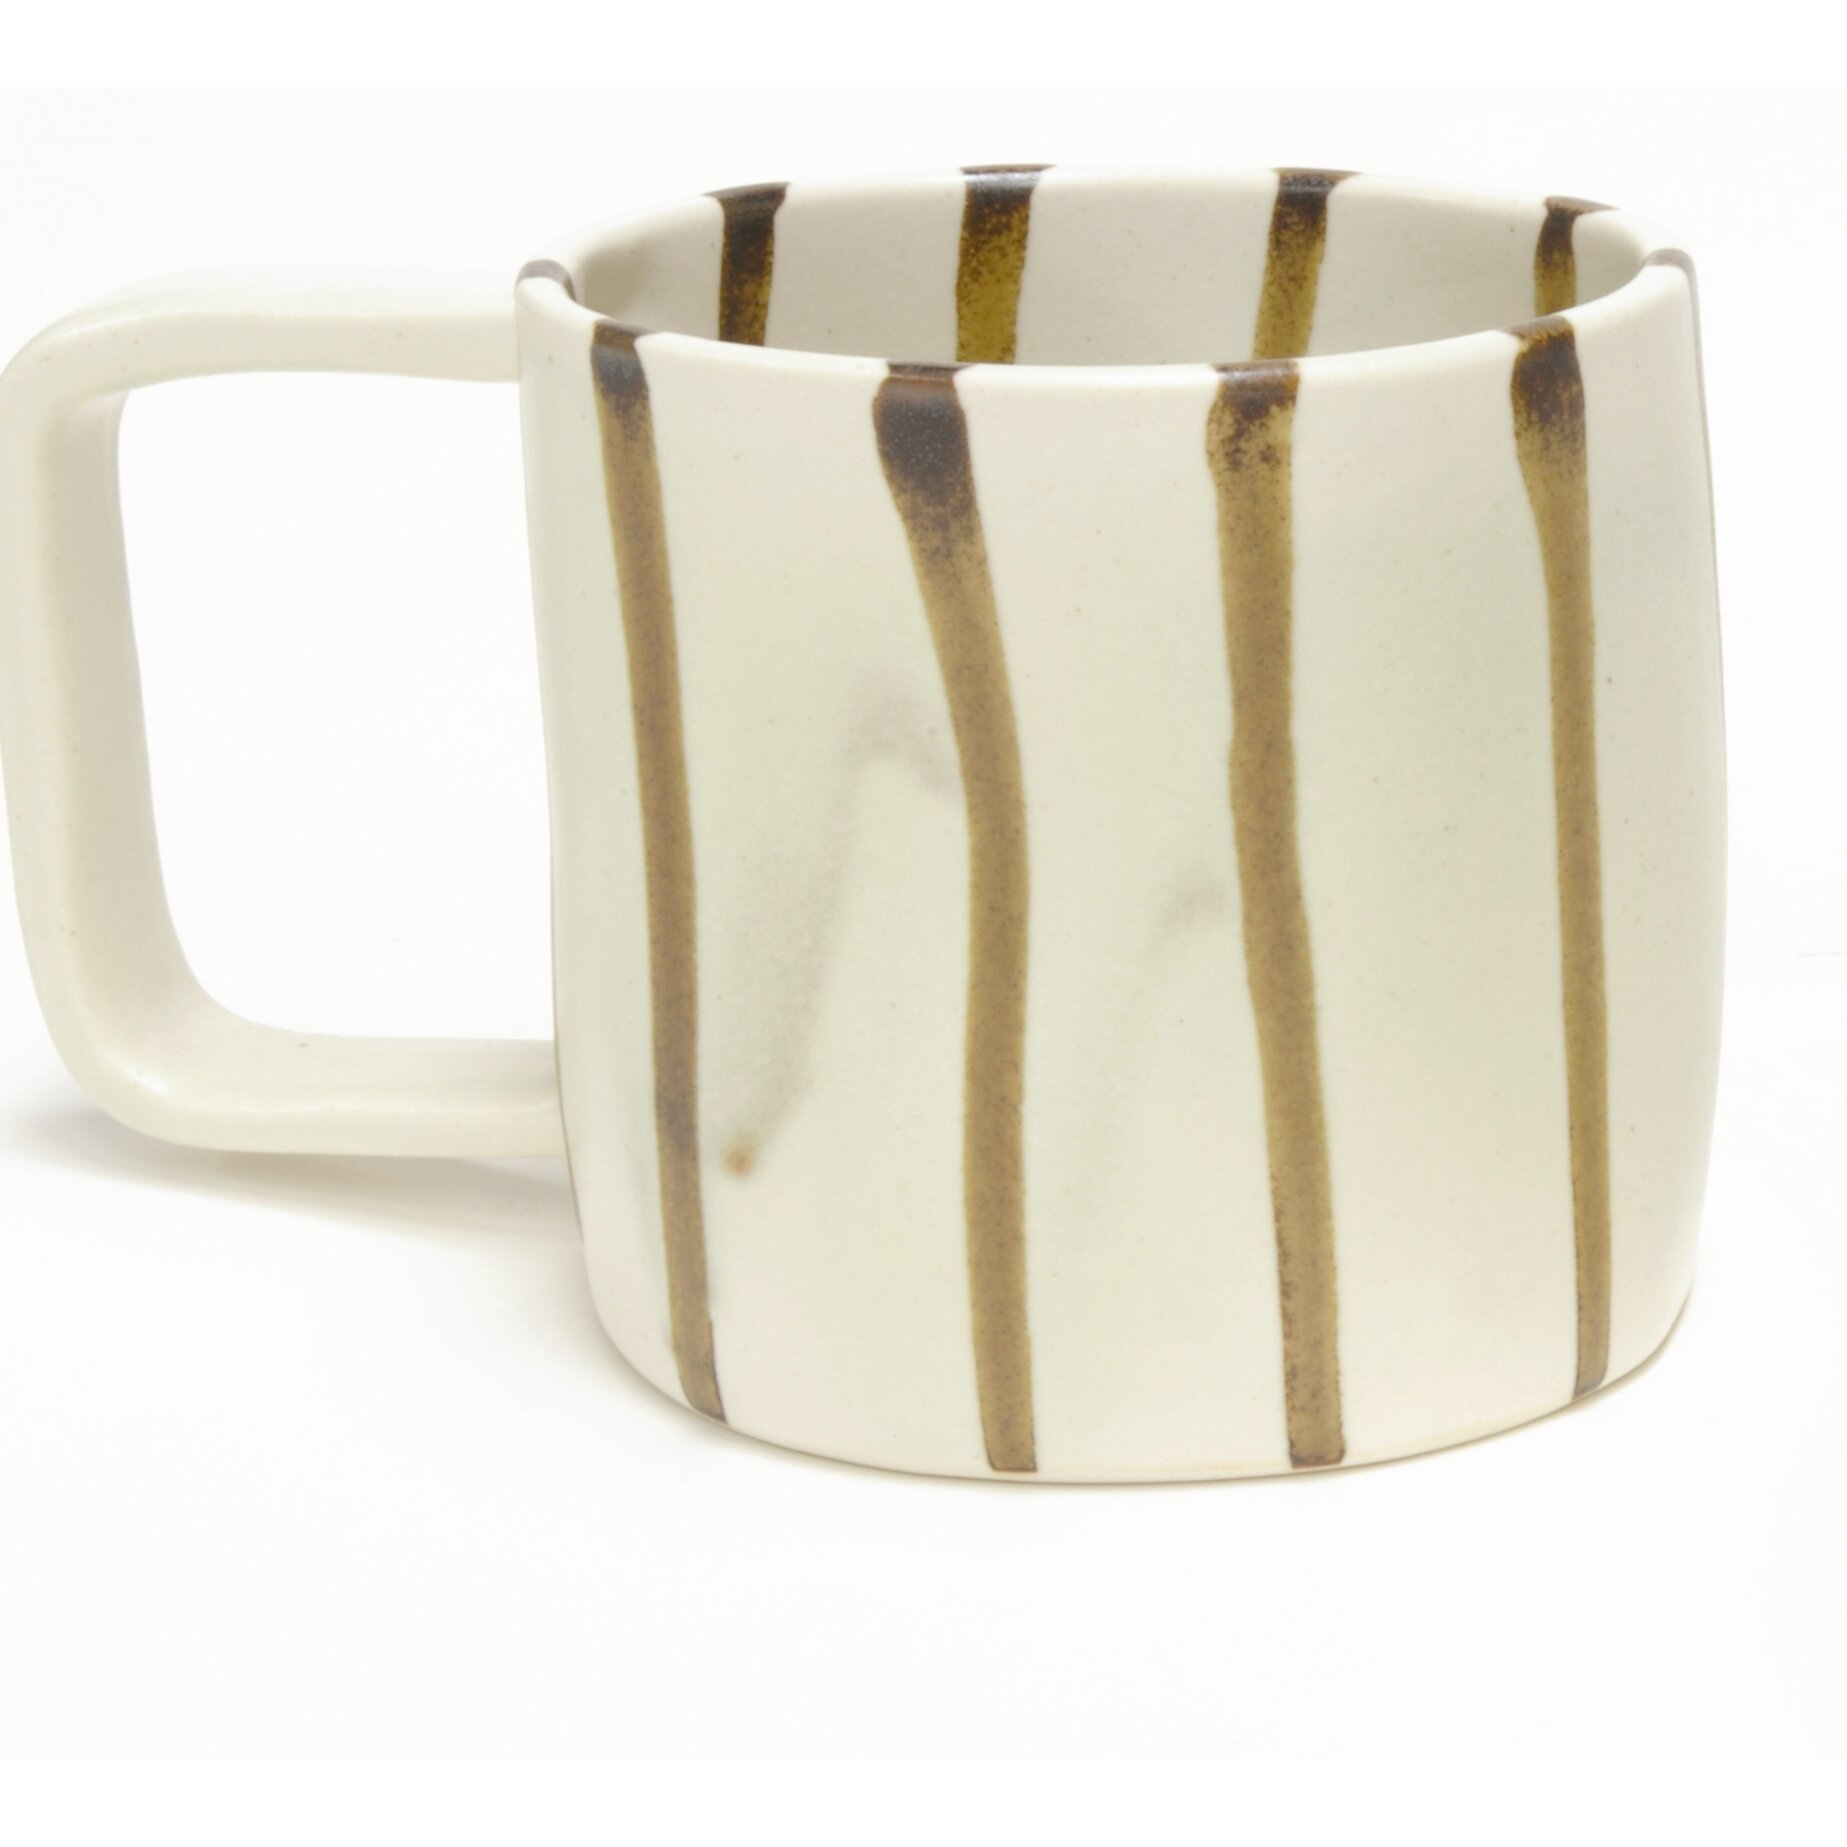 alex marshall studios short mug reviews wayfair